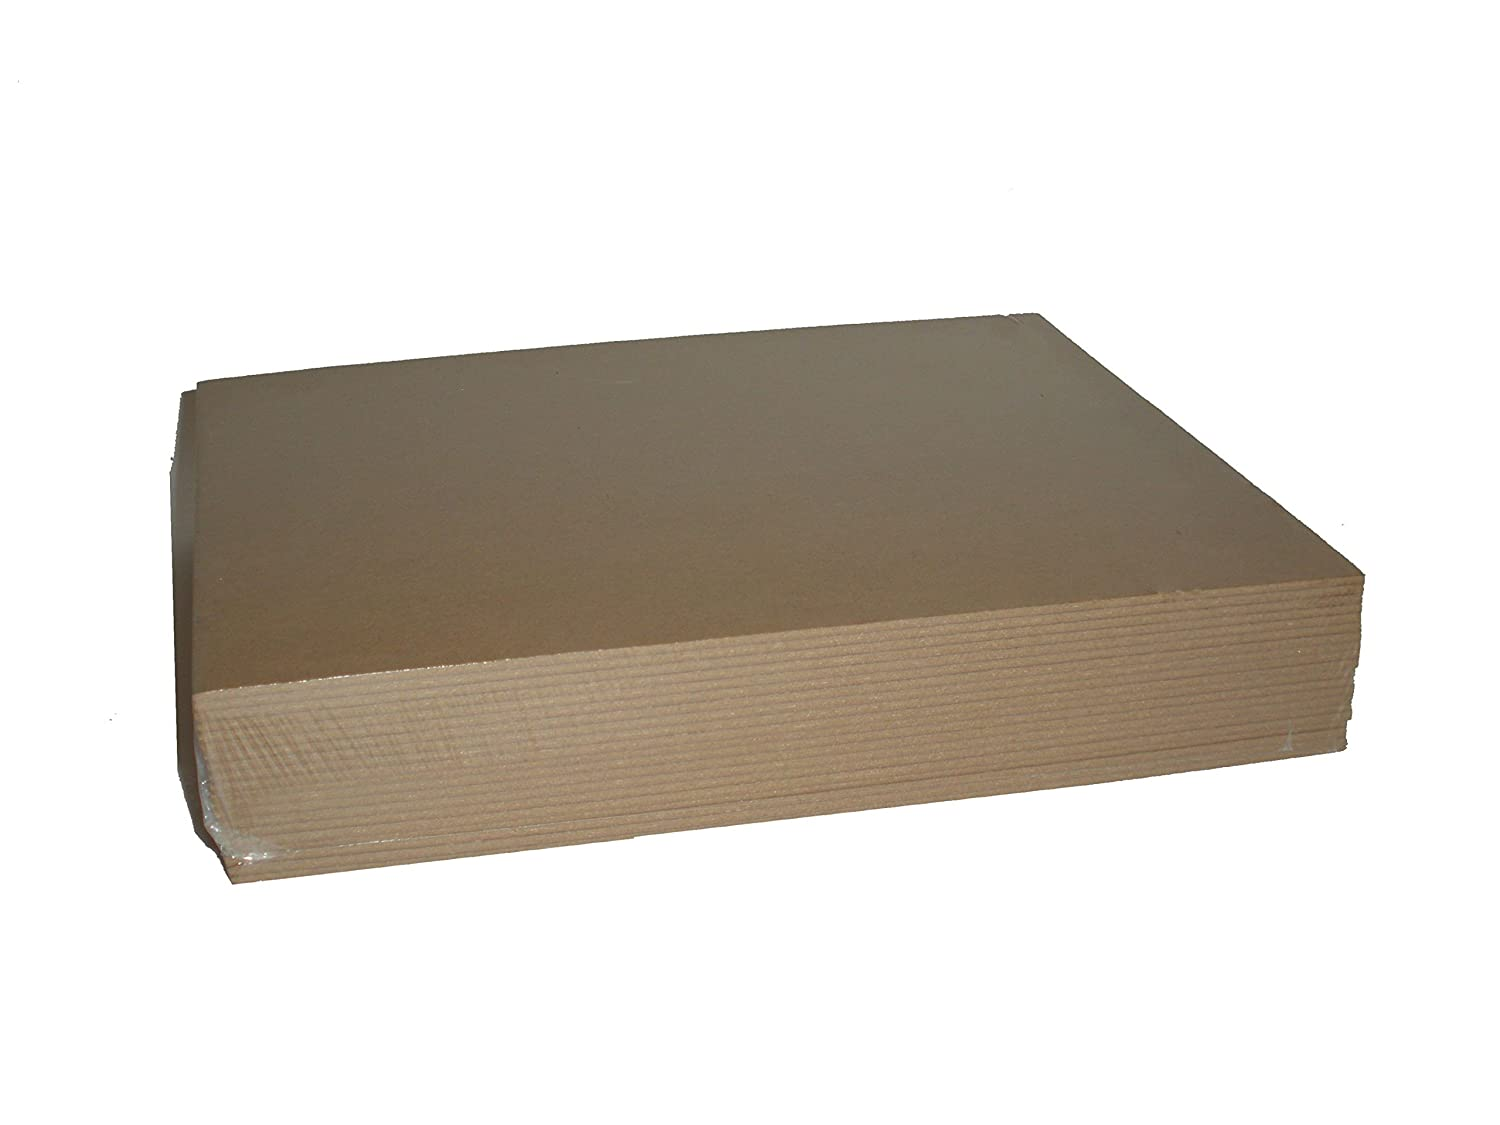 Brown Chipboard 100 Point Extra Thick 8.5 x 11 Inches, .100 Caliper Heavy Cardboard 2.54 mm Thick Kling Magnetics